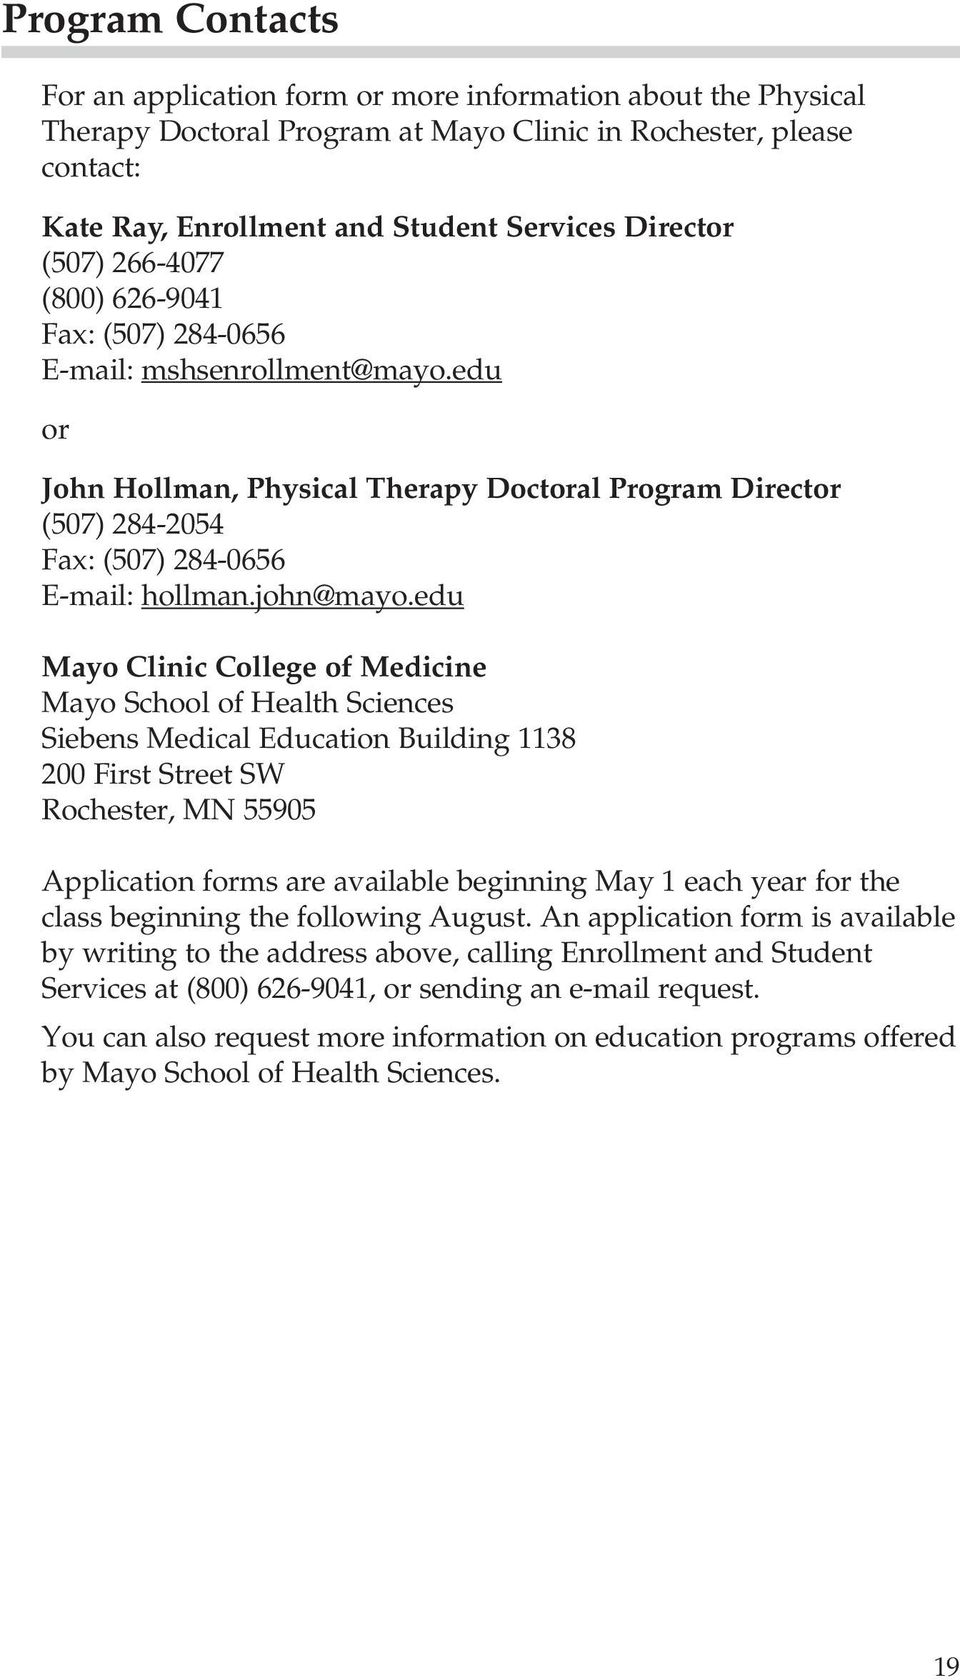 Mayo School of Health Sciences  Physical Therapy Doctoral Program